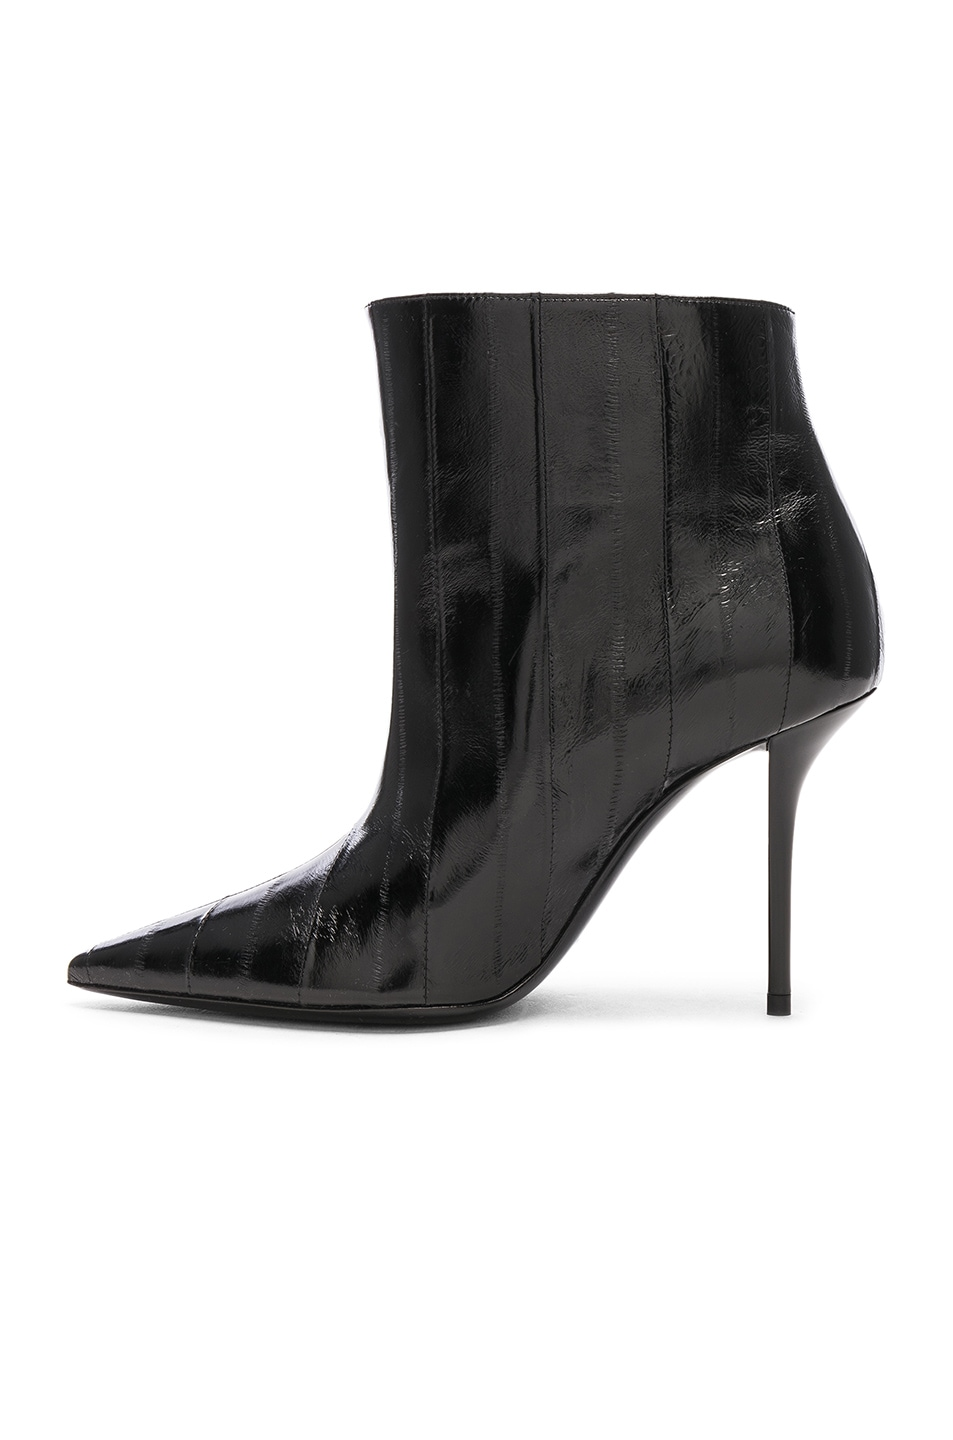 Image 5 of Saint Laurent Eel Leather Pierre Stiletto Ankle Boots in Black